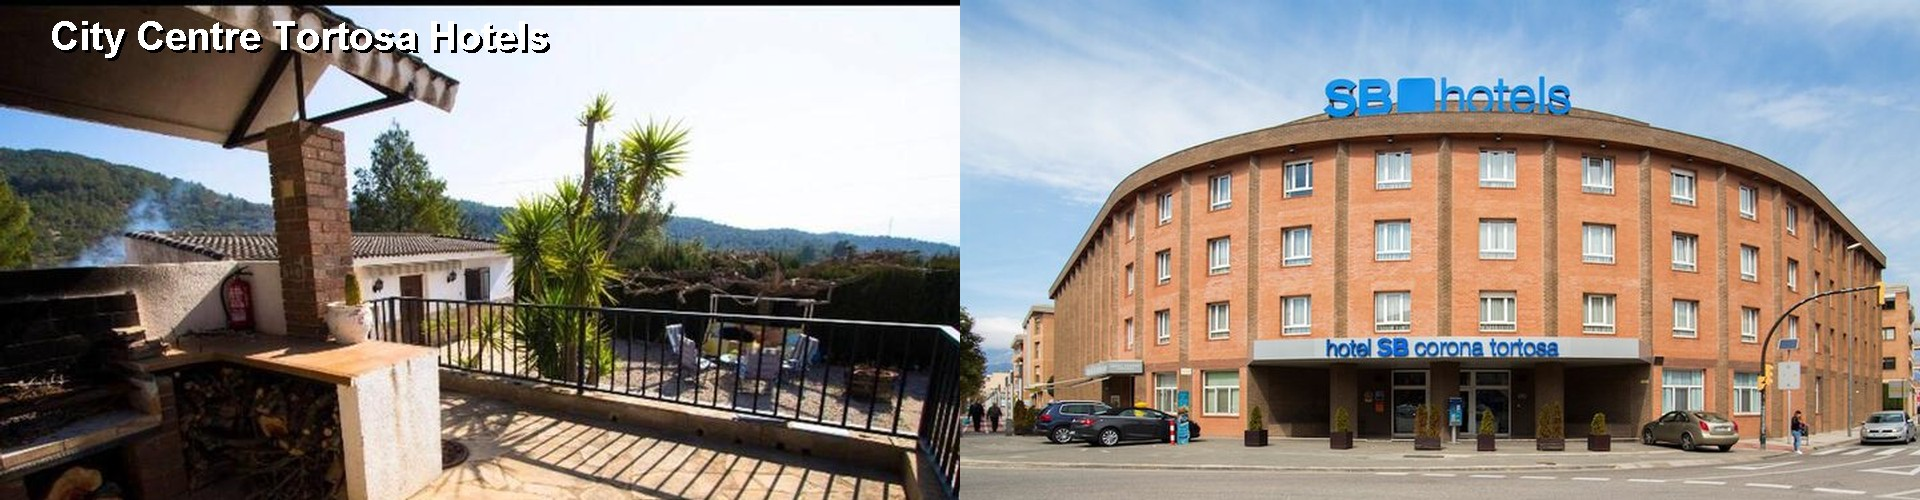 2 Best Hotels near City Centre Tortosa